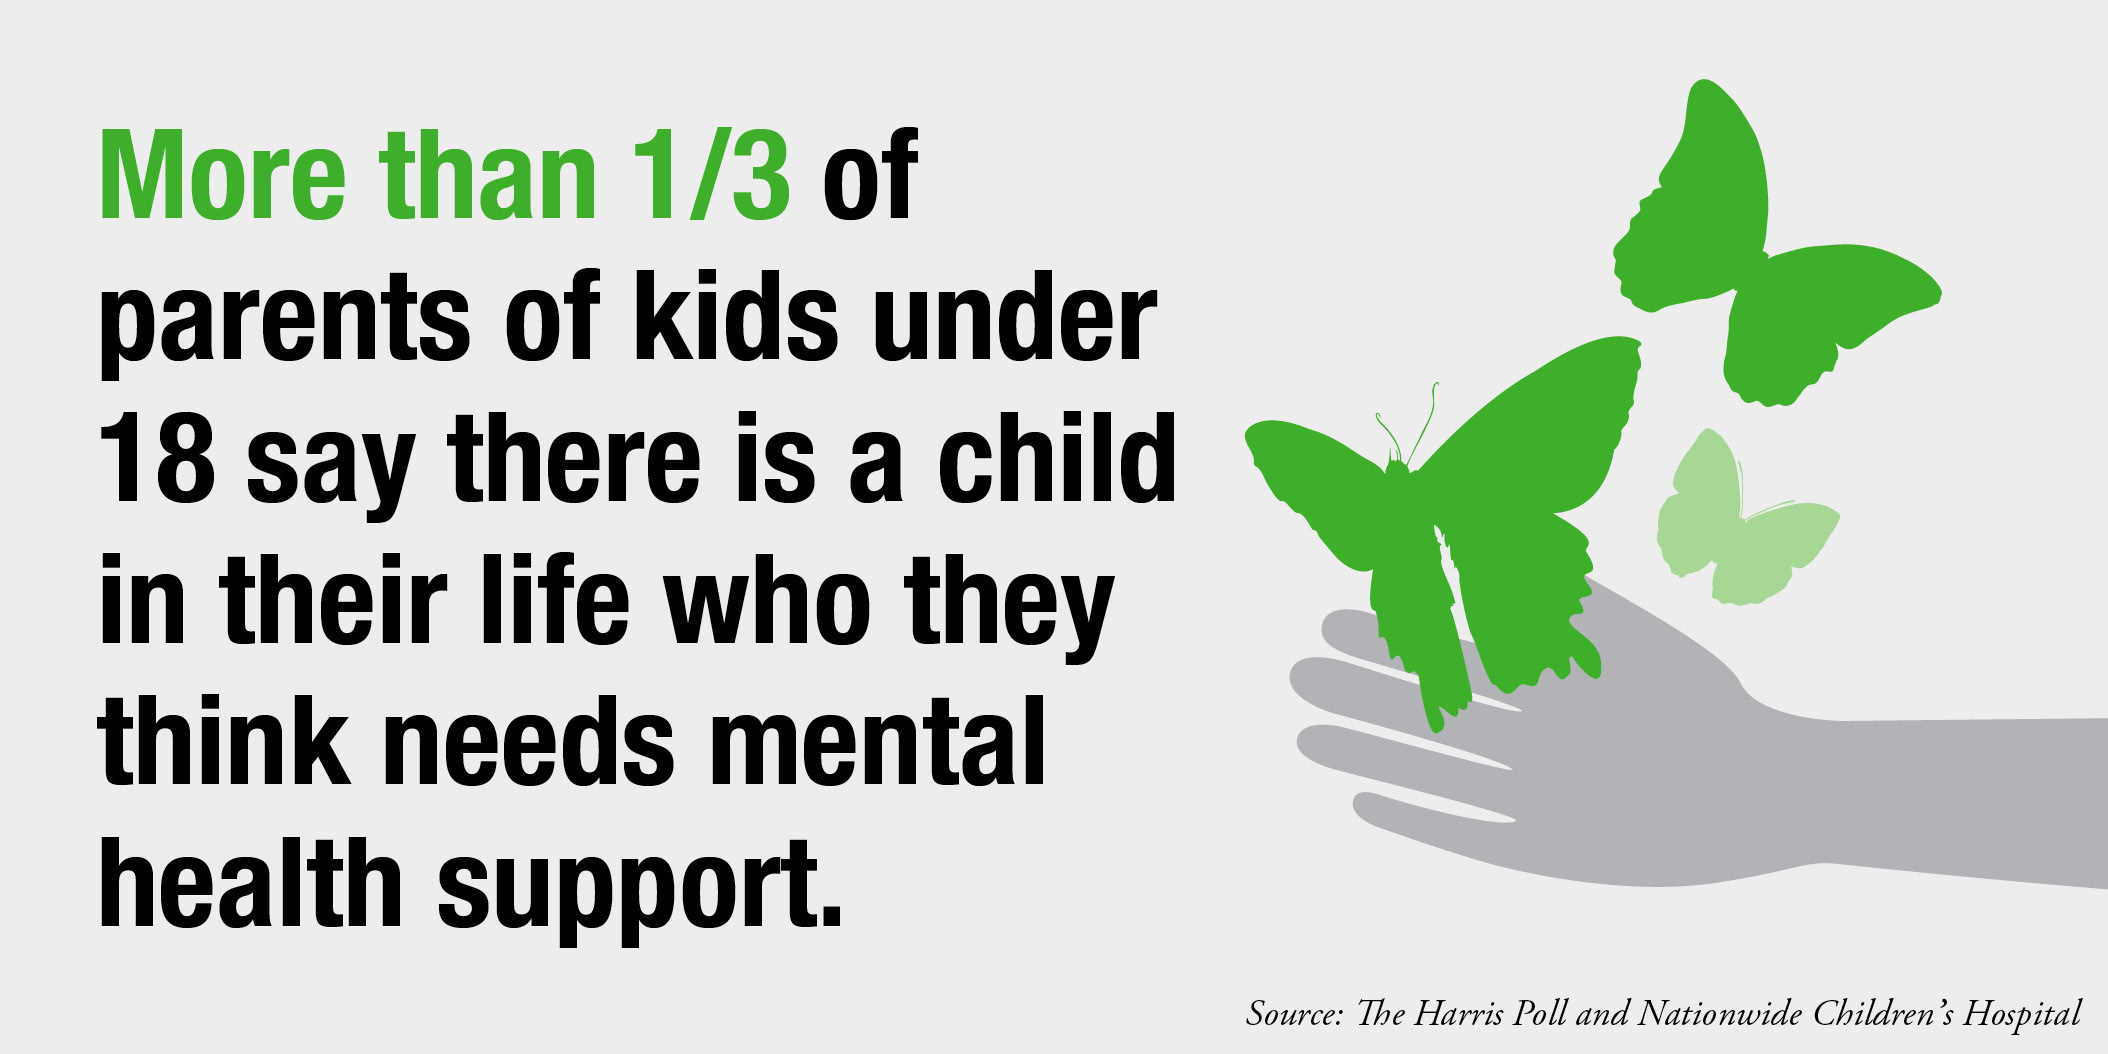 Four in Five Americans Favor Increase in Mental Health Support For Kids